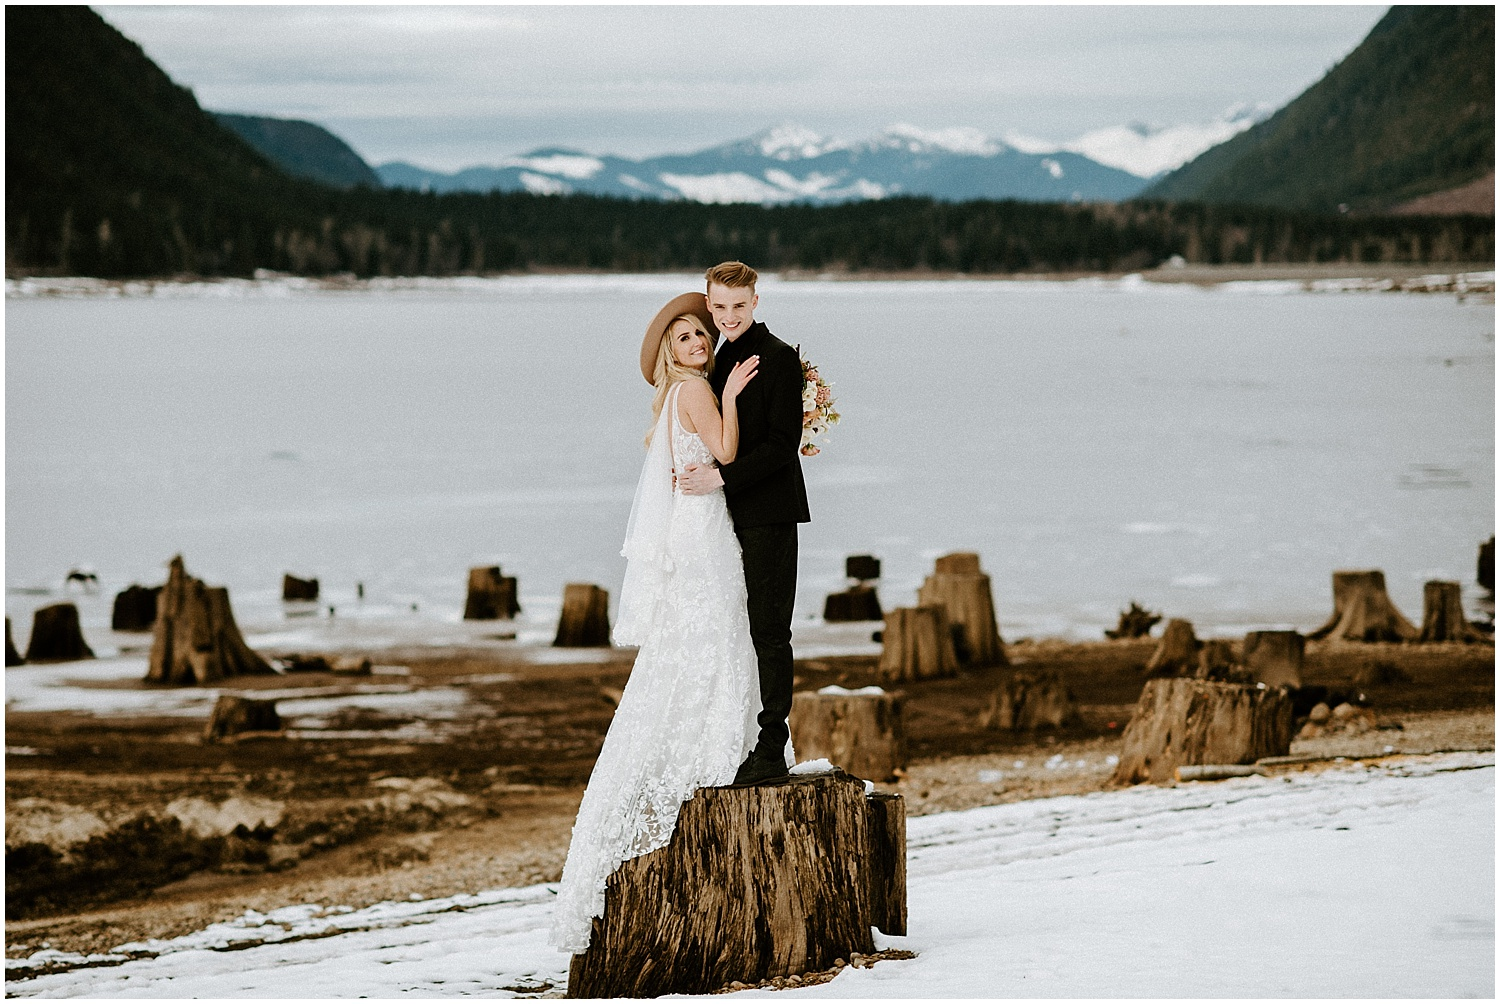 Jones_Lake_wedding_winter_elopement_vancouver_photographer_0256.jpg